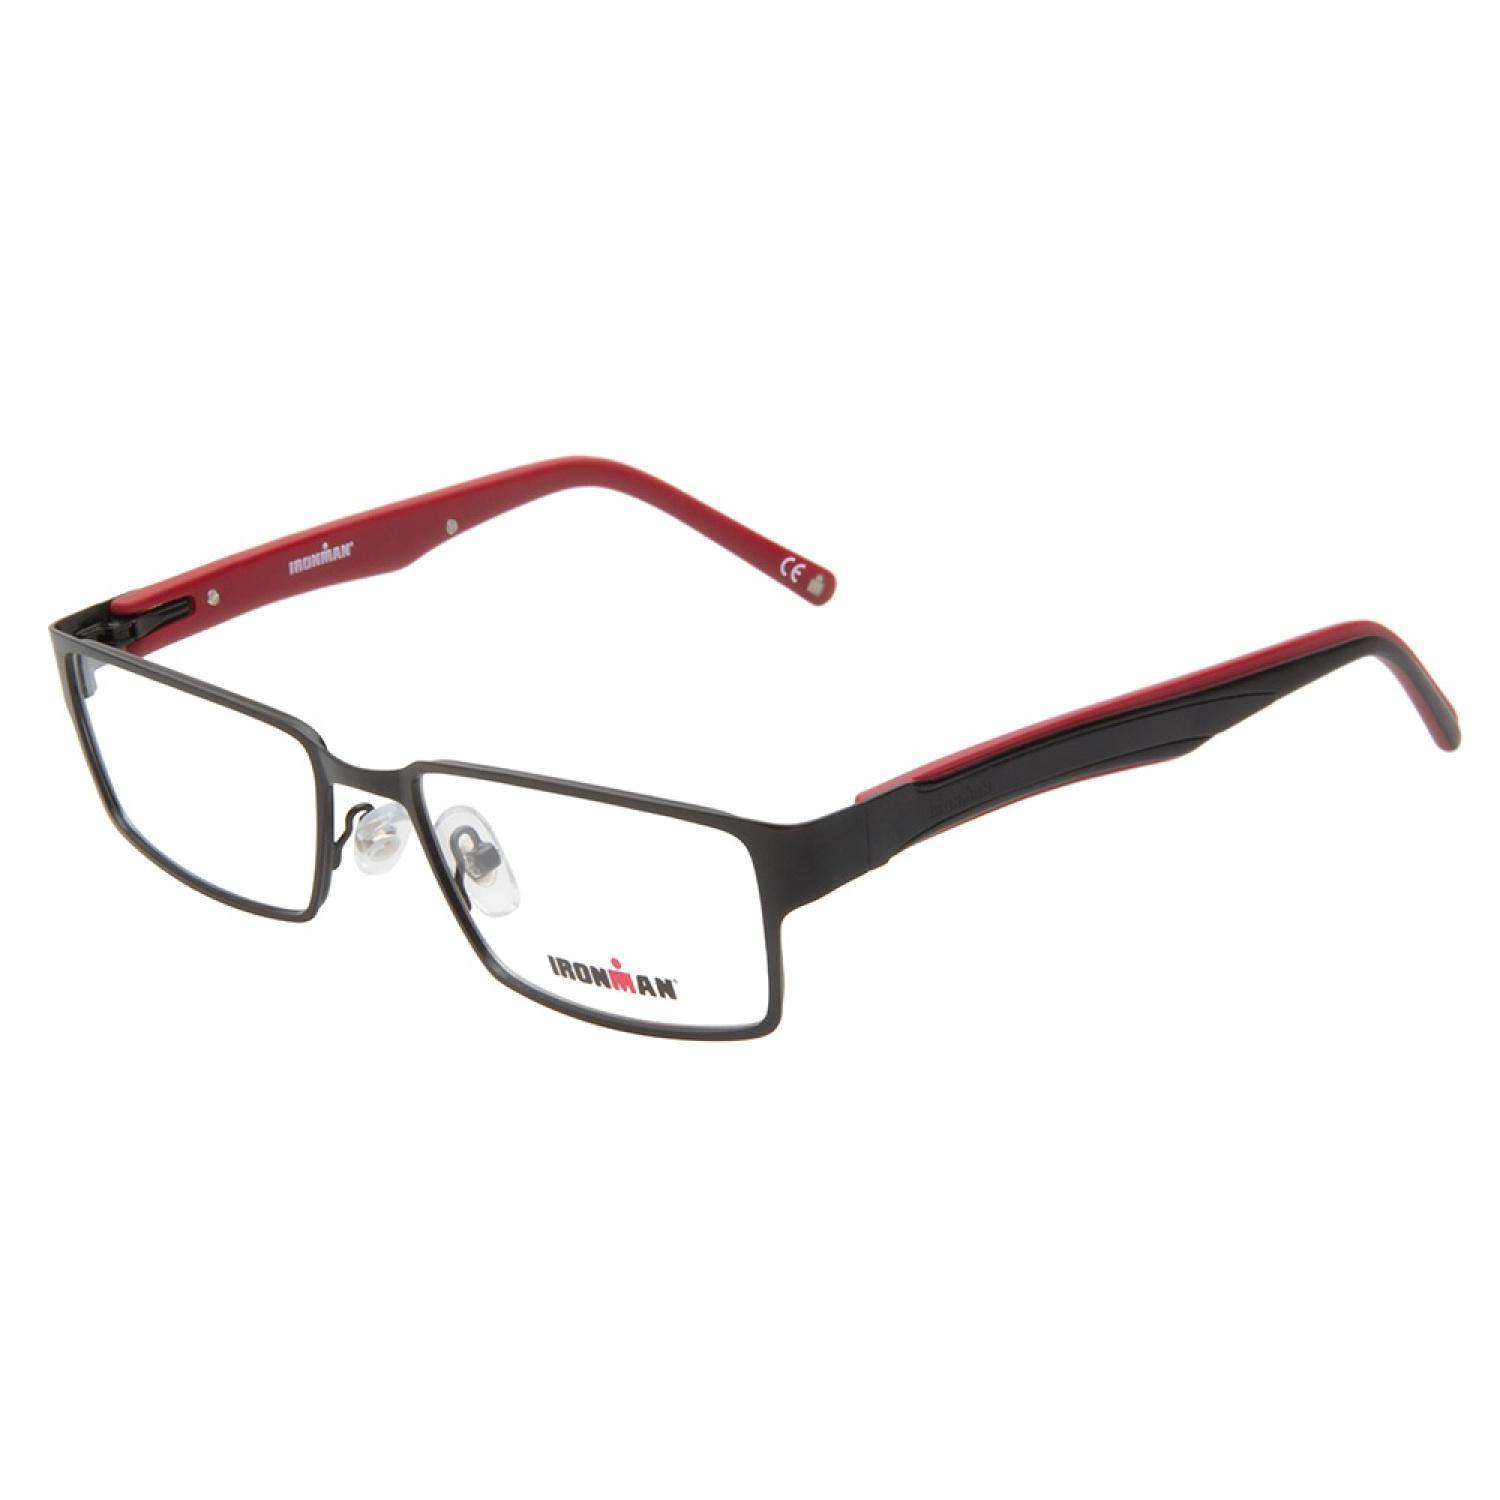 9a7185a0b9 Shop Ironman 104 Black Prescription Eyeglasses - Free Shipping Today ...